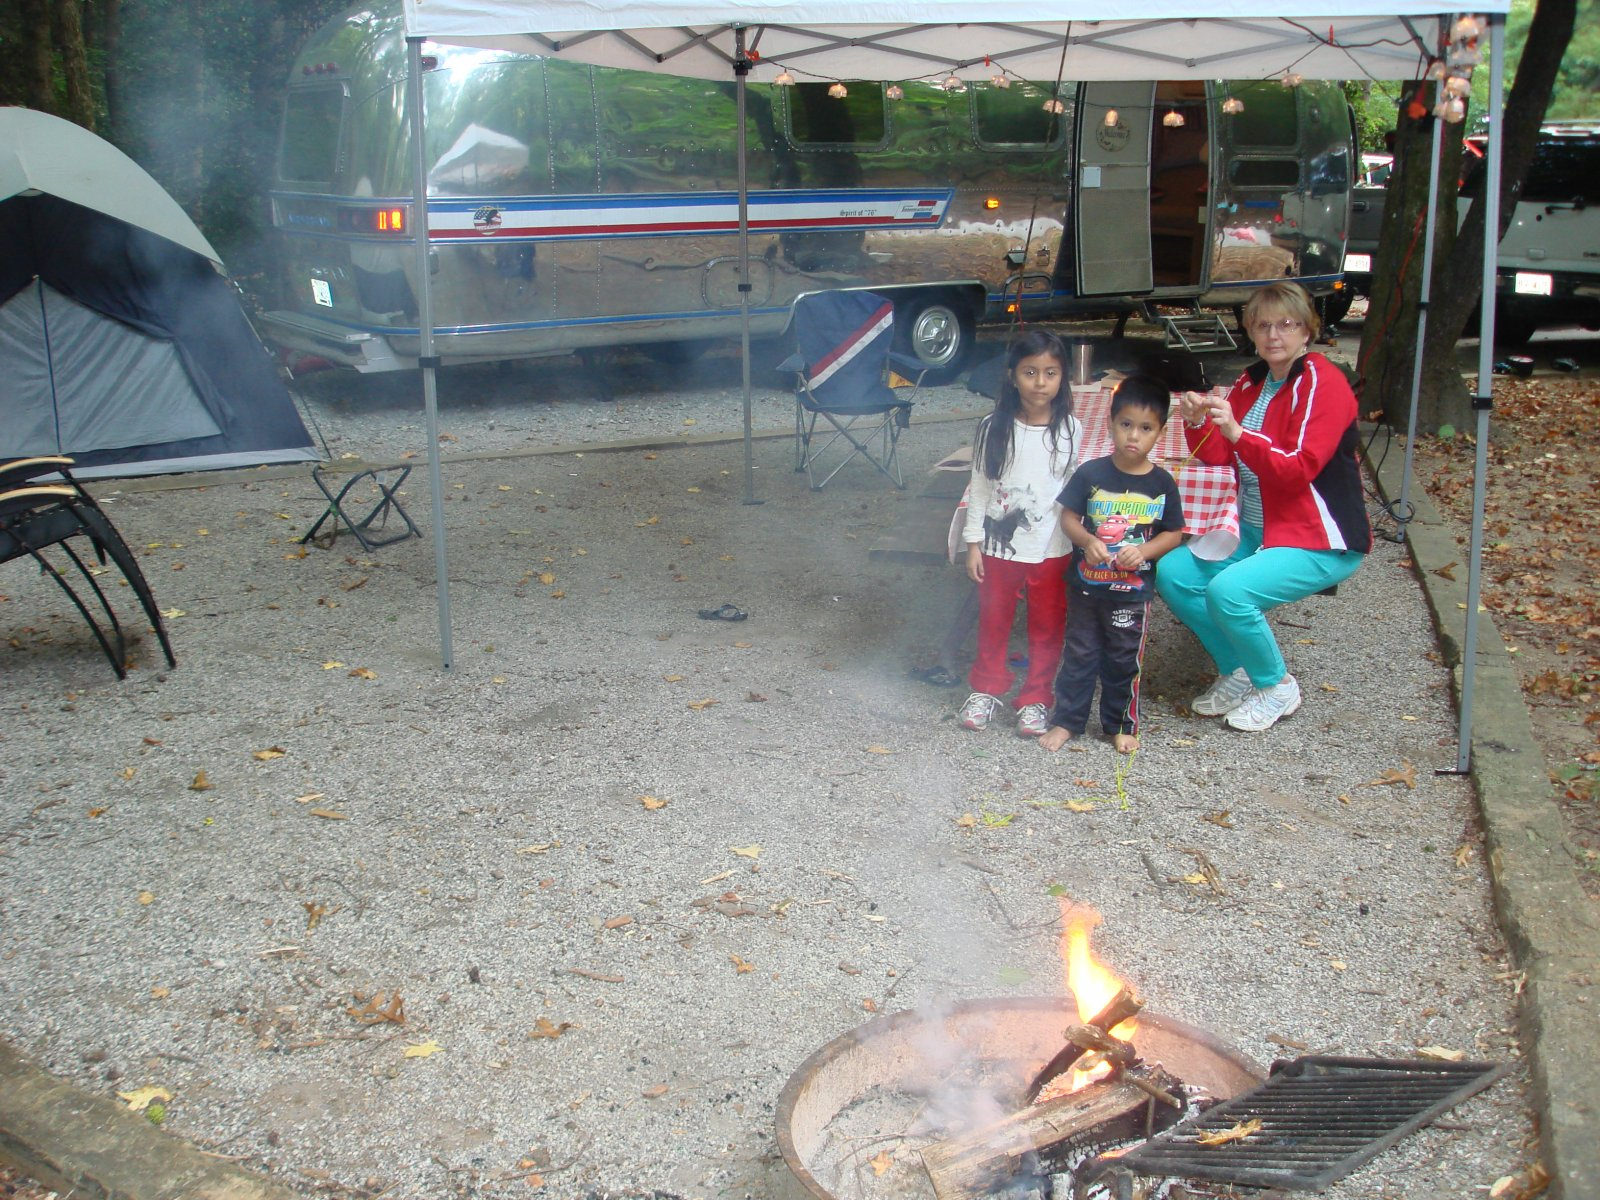 Click image for larger version  Name:campfire 004.jpg Views:93 Size:492.1 KB ID:141094